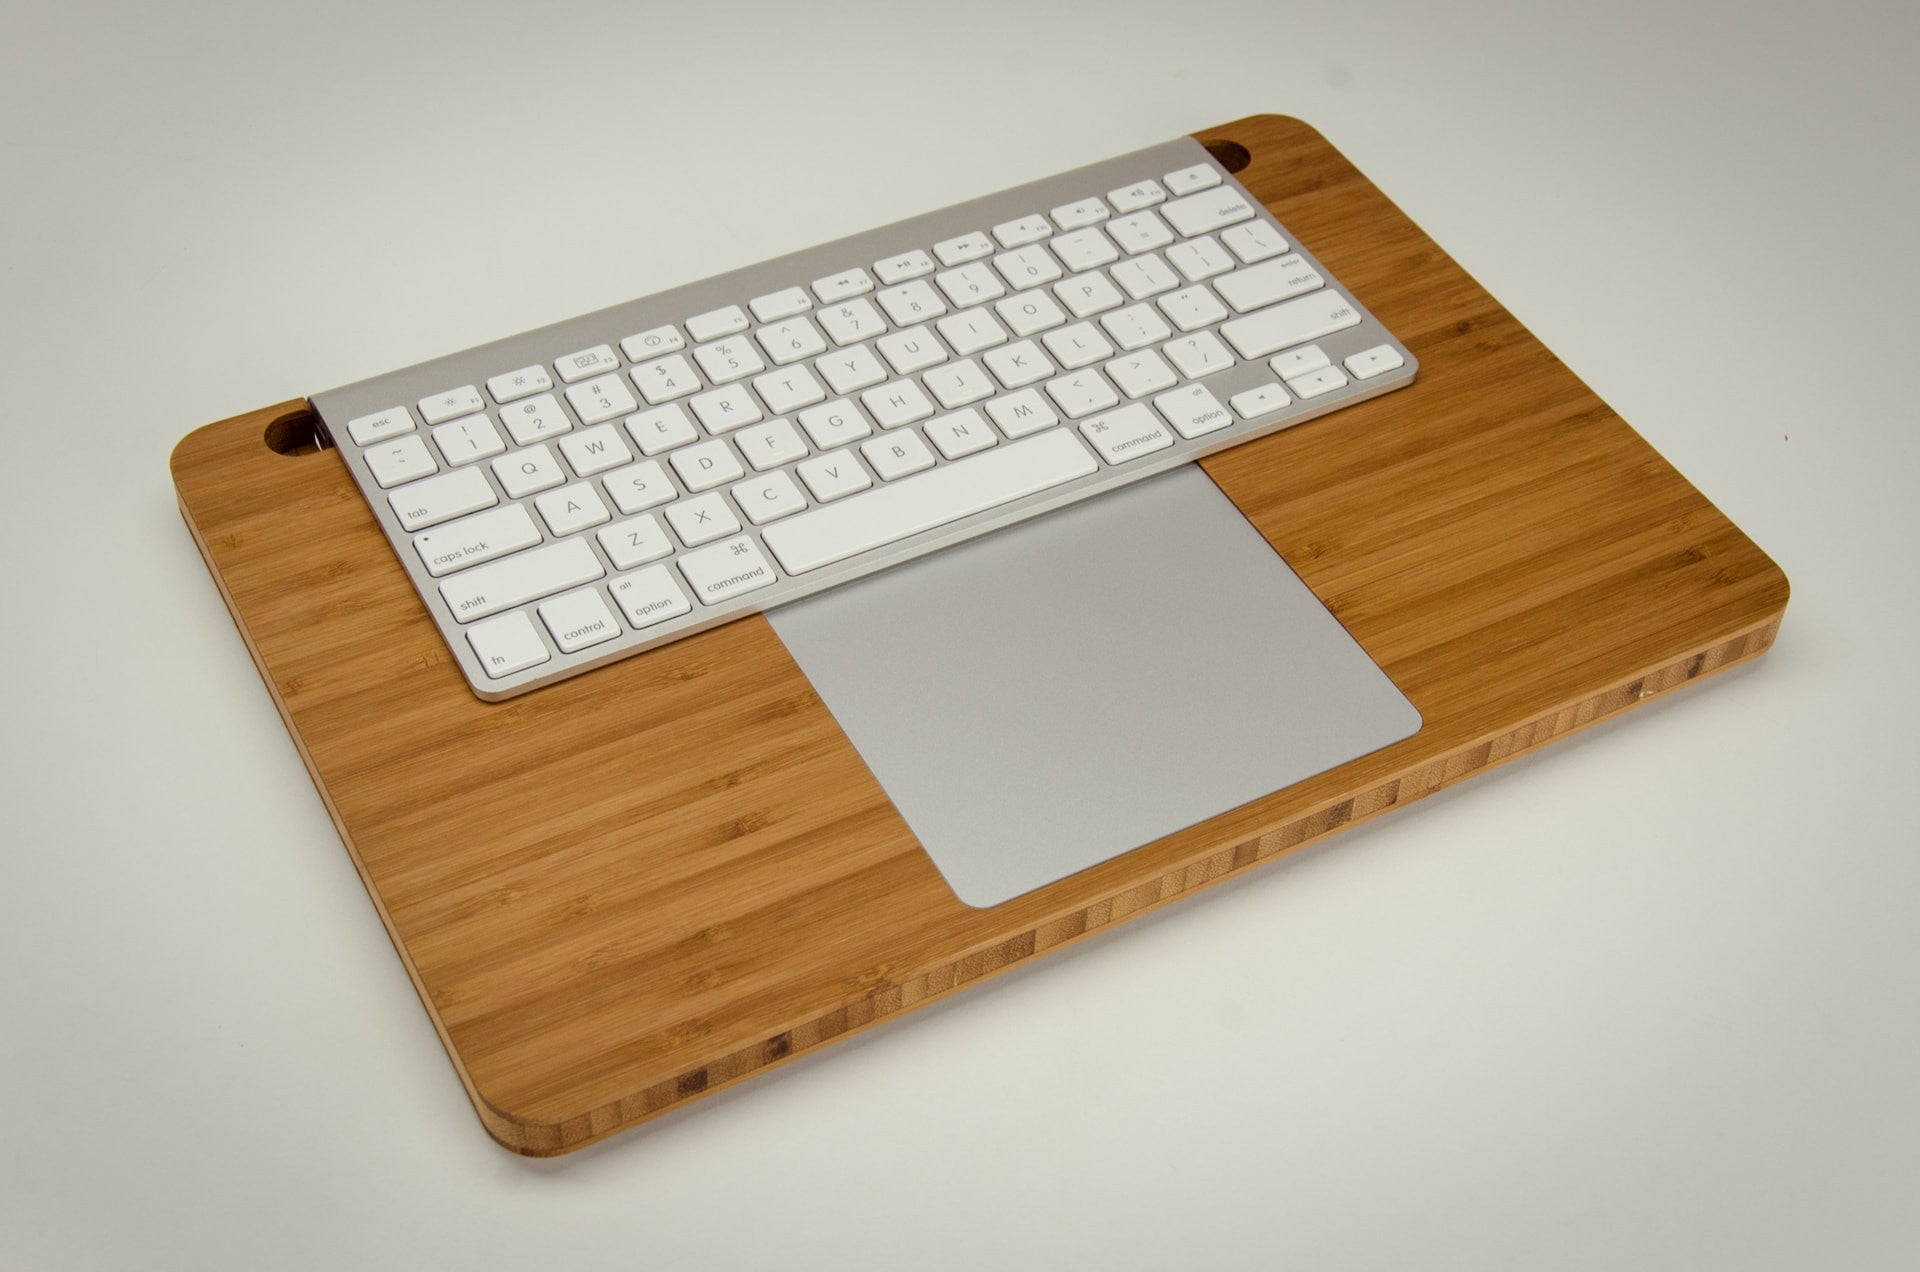 Thodio MacDec, Apple Trackpad and Keyboard Platform